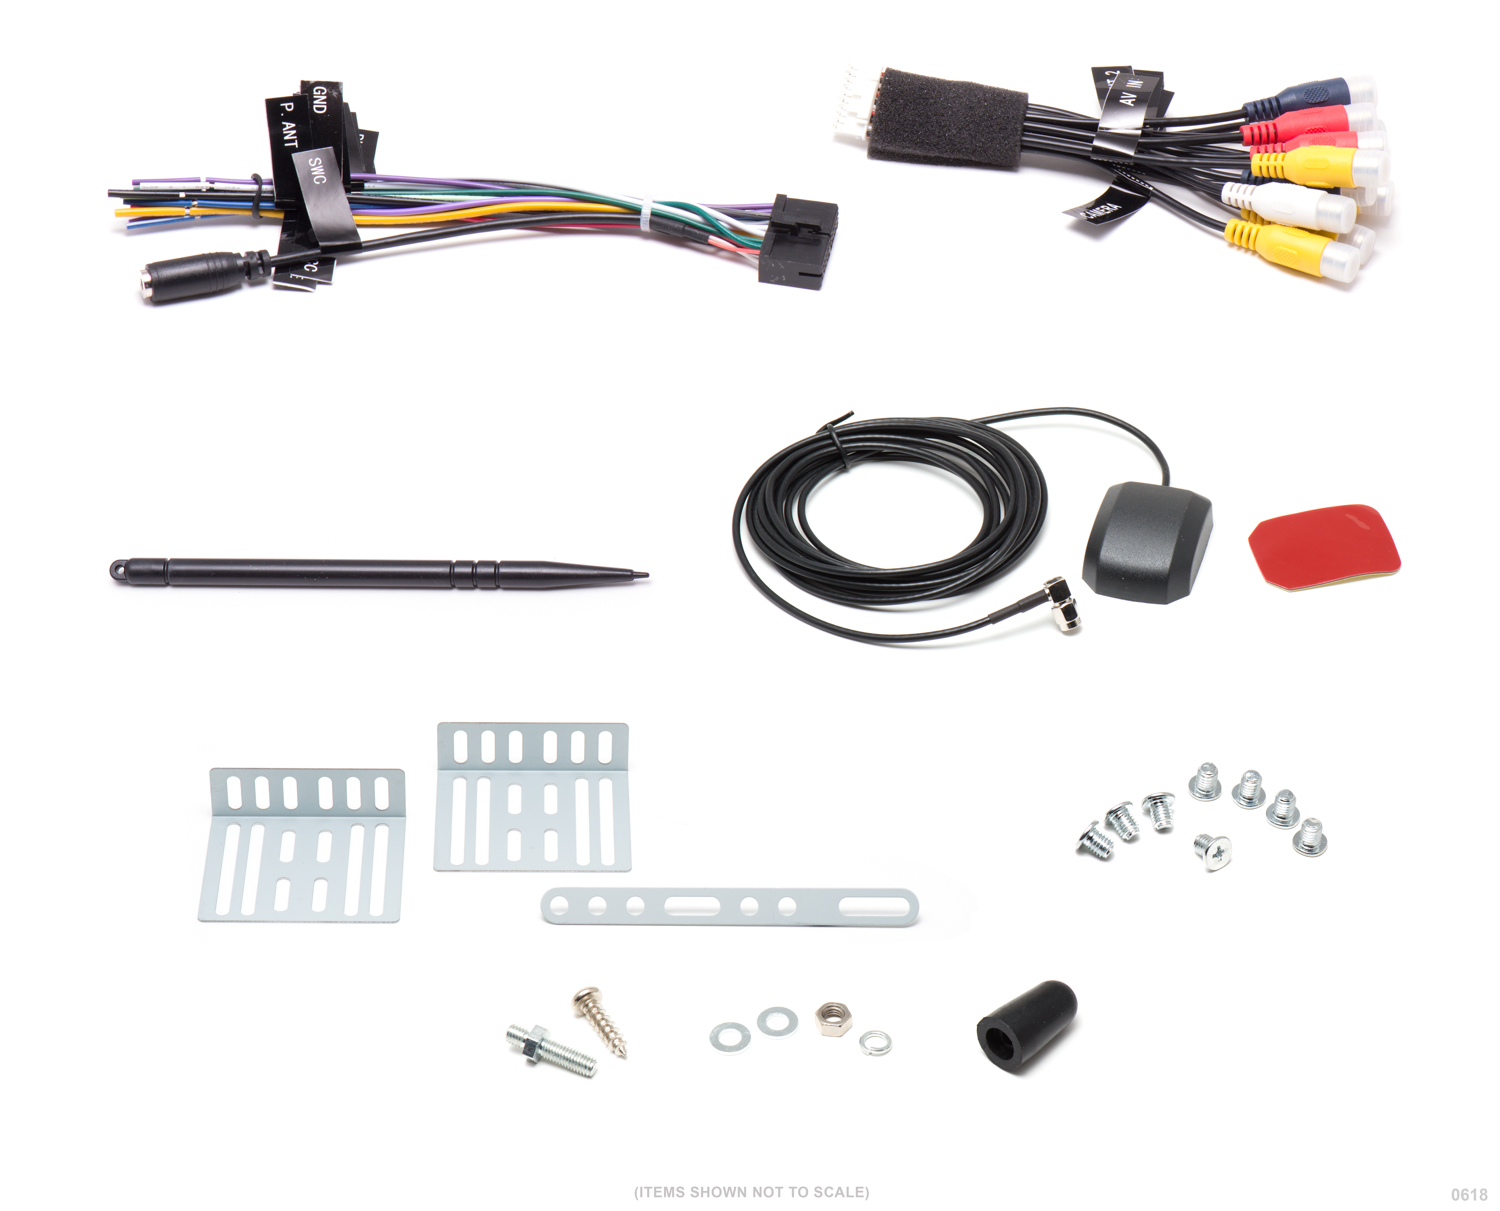 Bv9384nv Boss Audio Systems Tomtom Gps Tracker Wiring Diagram